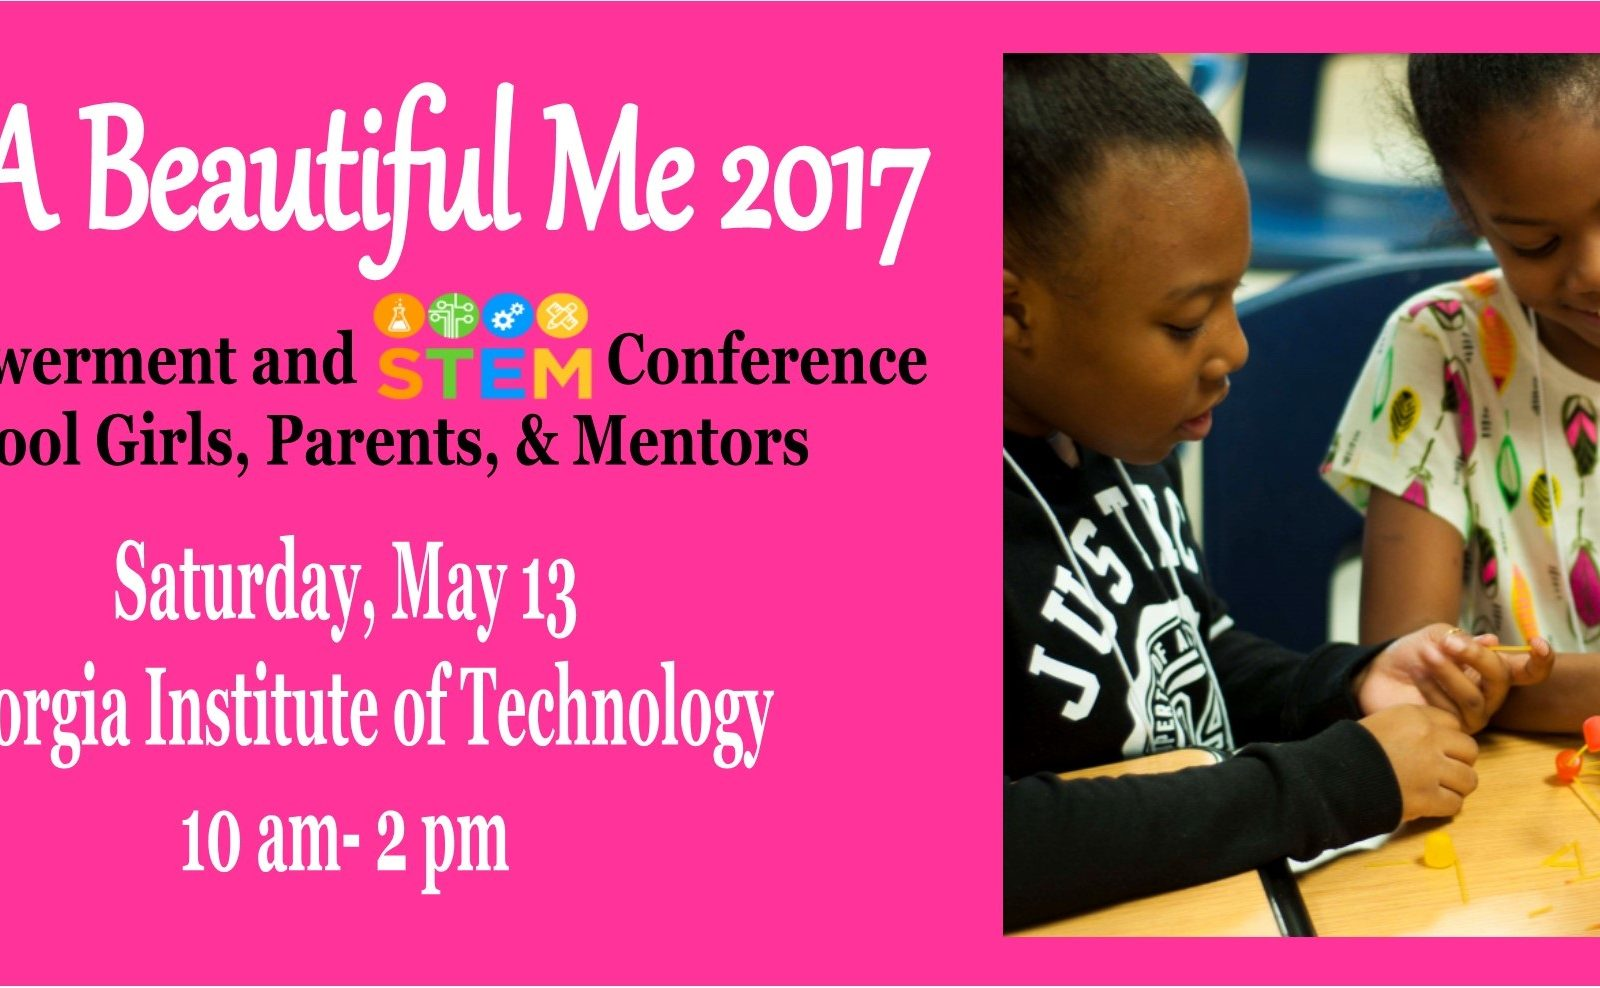 A Beautiful Me 2017 Empowerment and STEM Conference.